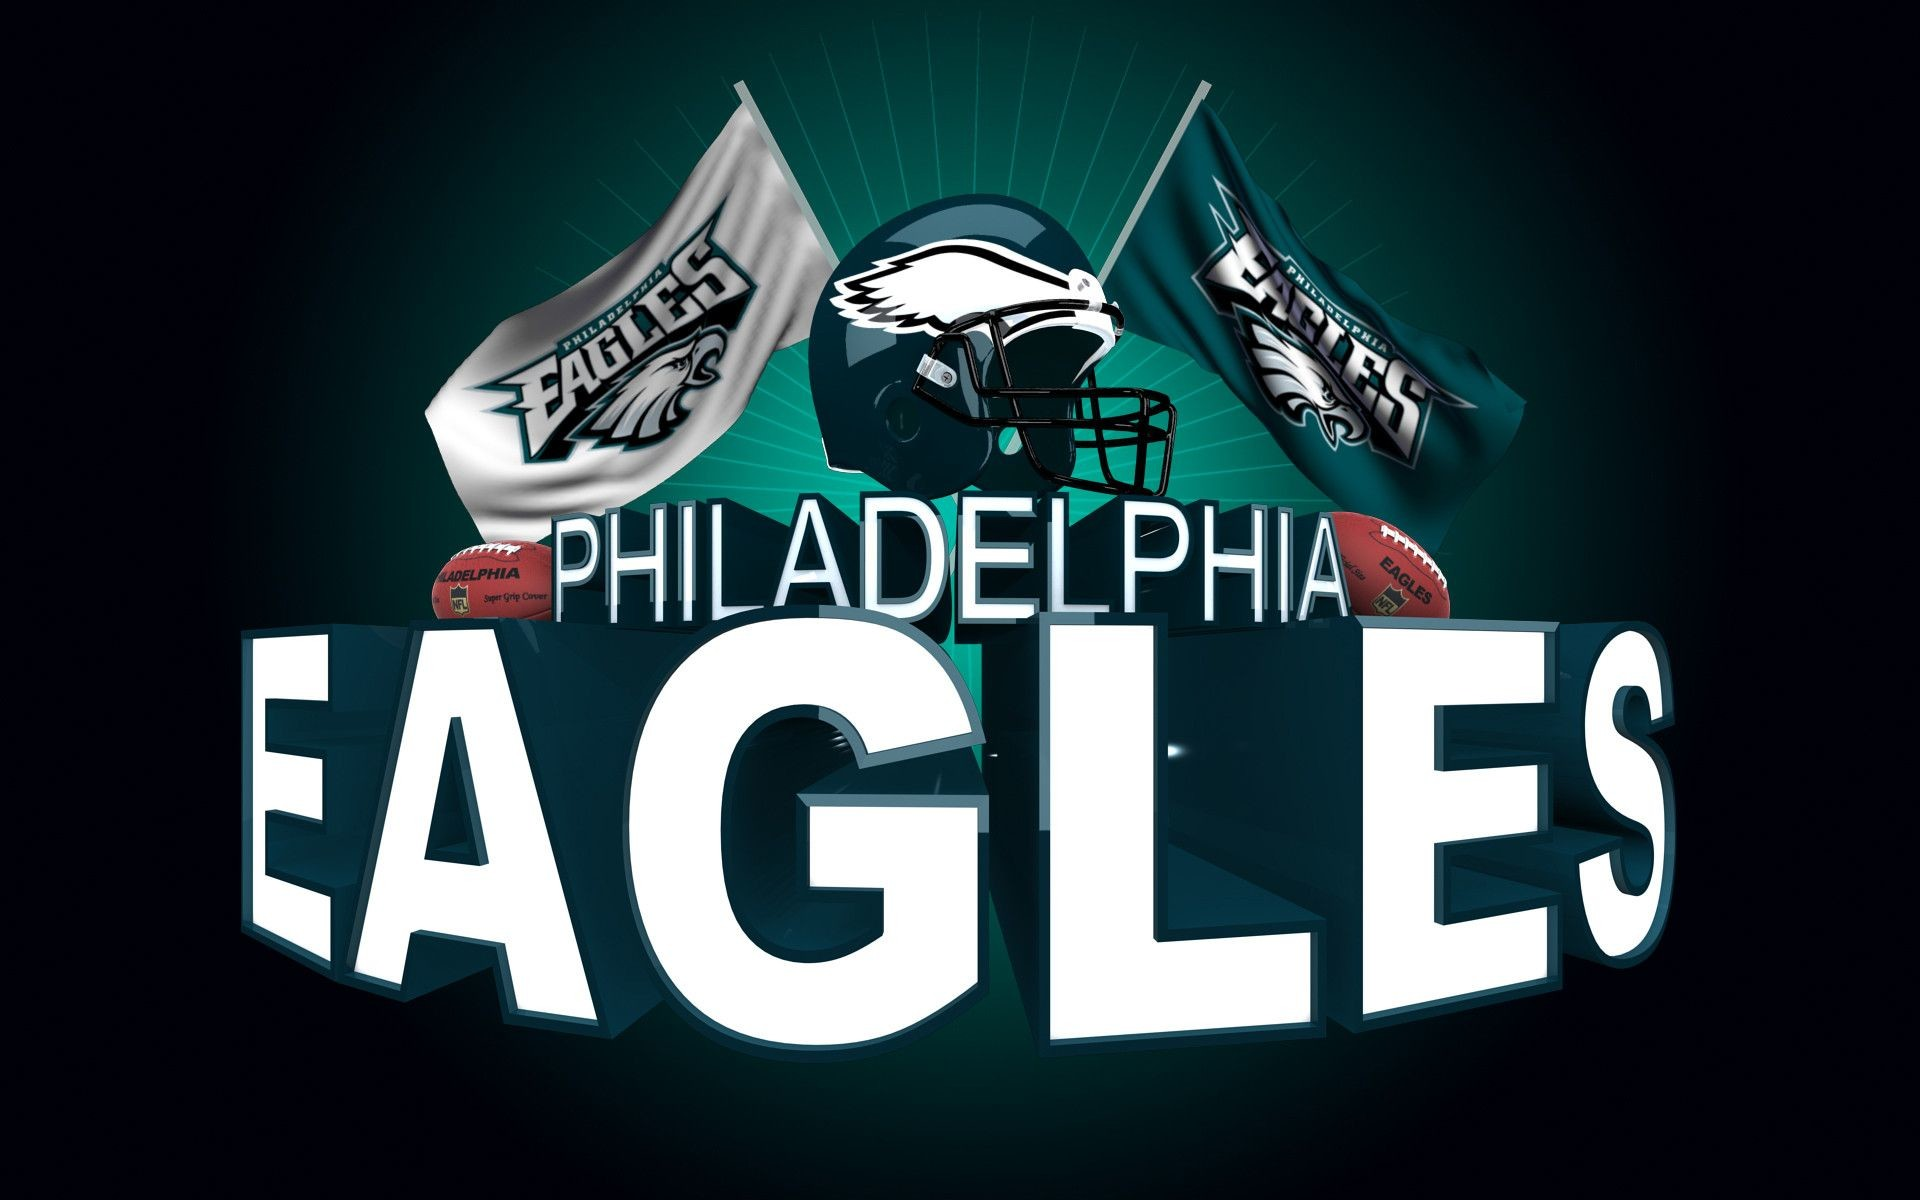 1920x1200 Philadelphia Eagles Wallpaper desktop